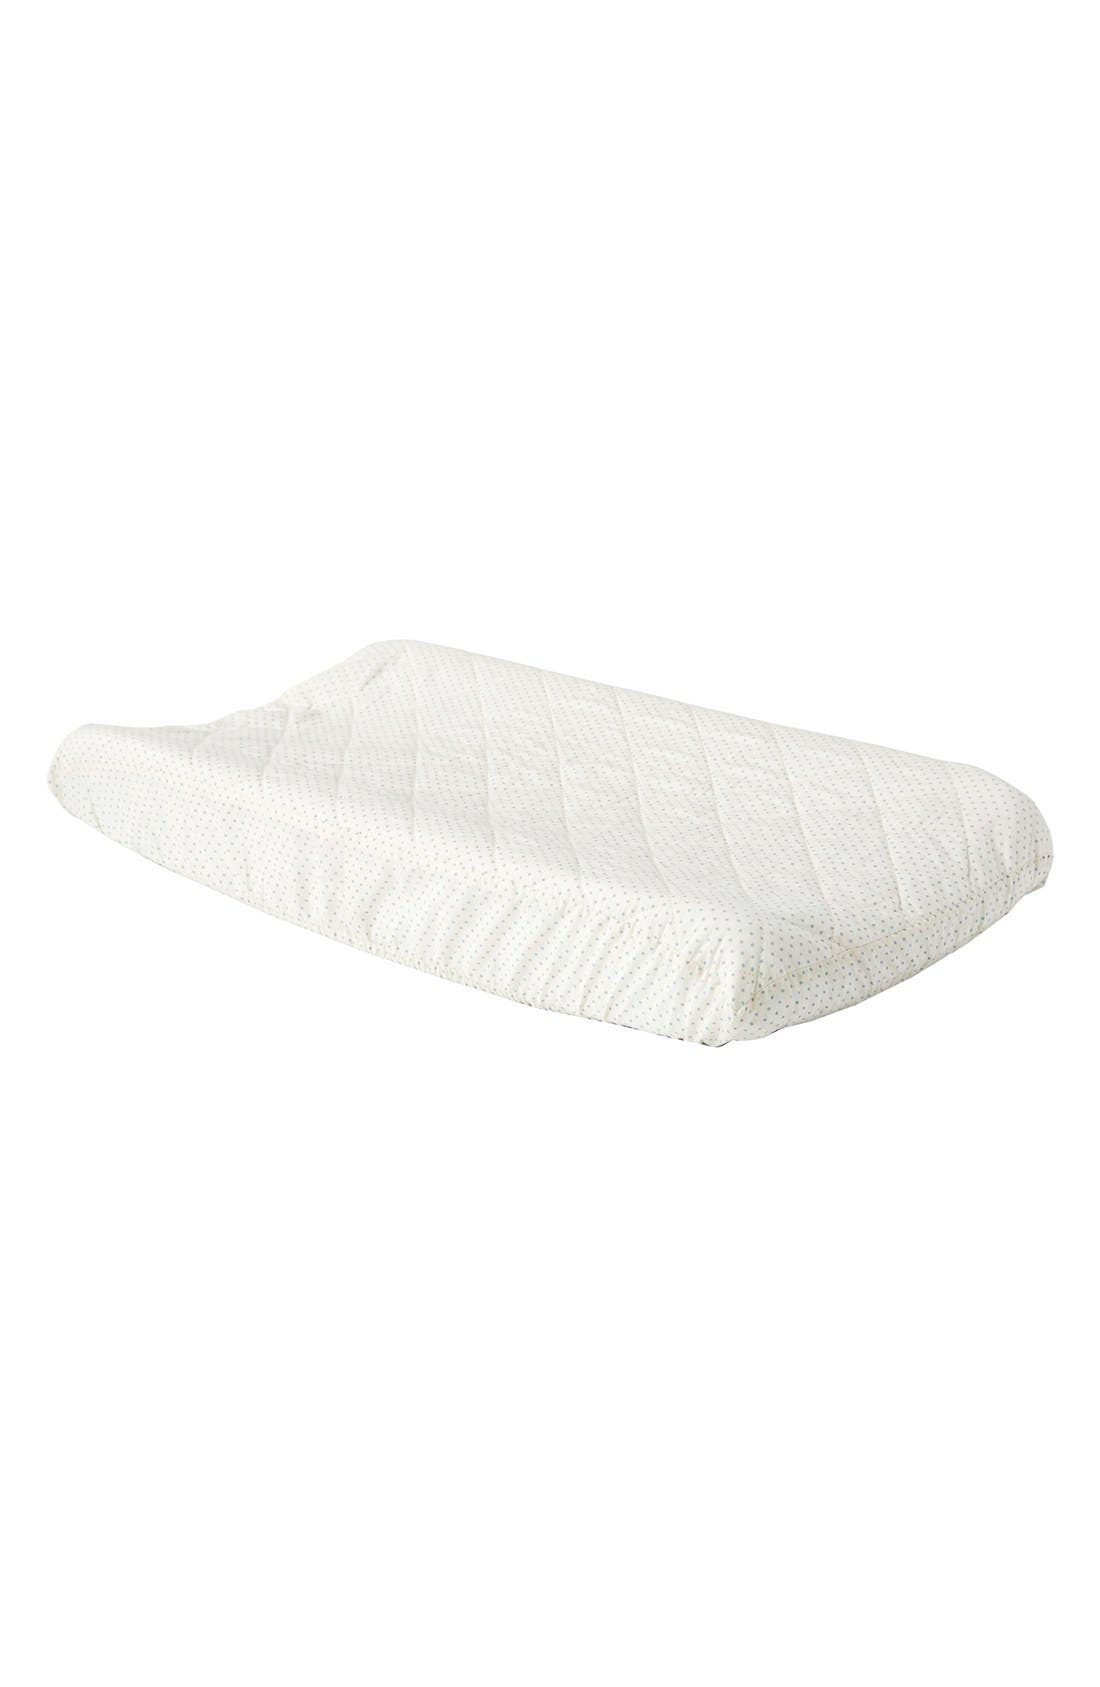 Brushed Cotton Changing Pad Cover,                             Main thumbnail 3, color,